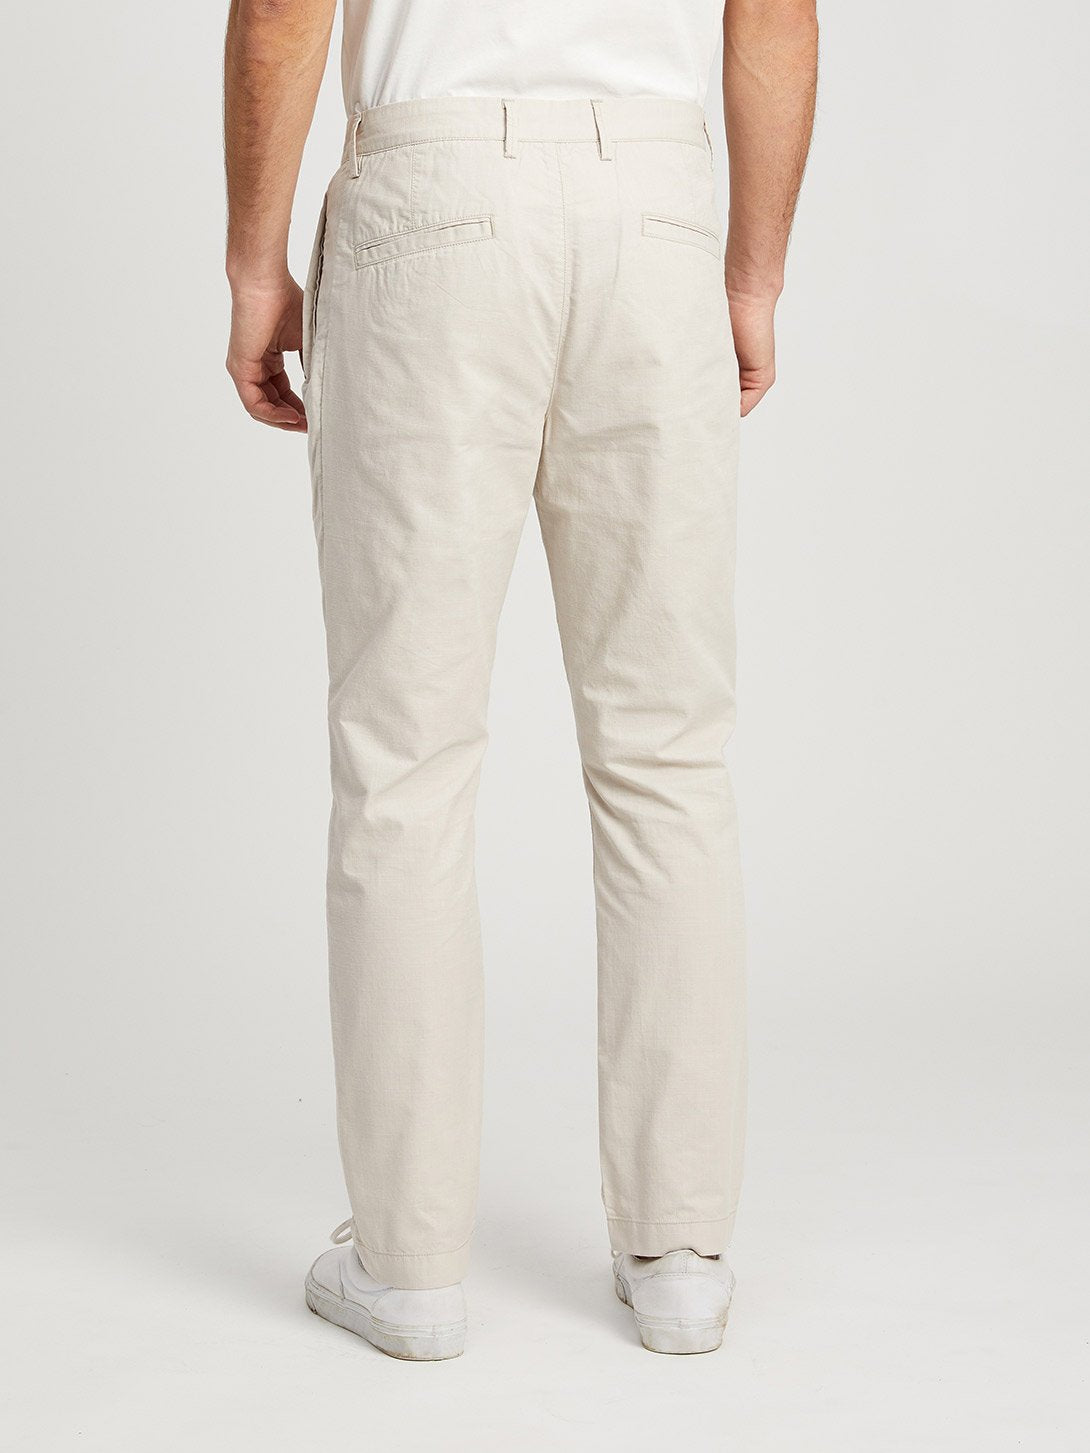 LIGHT KHAKI pants for men modern chino ons clothing